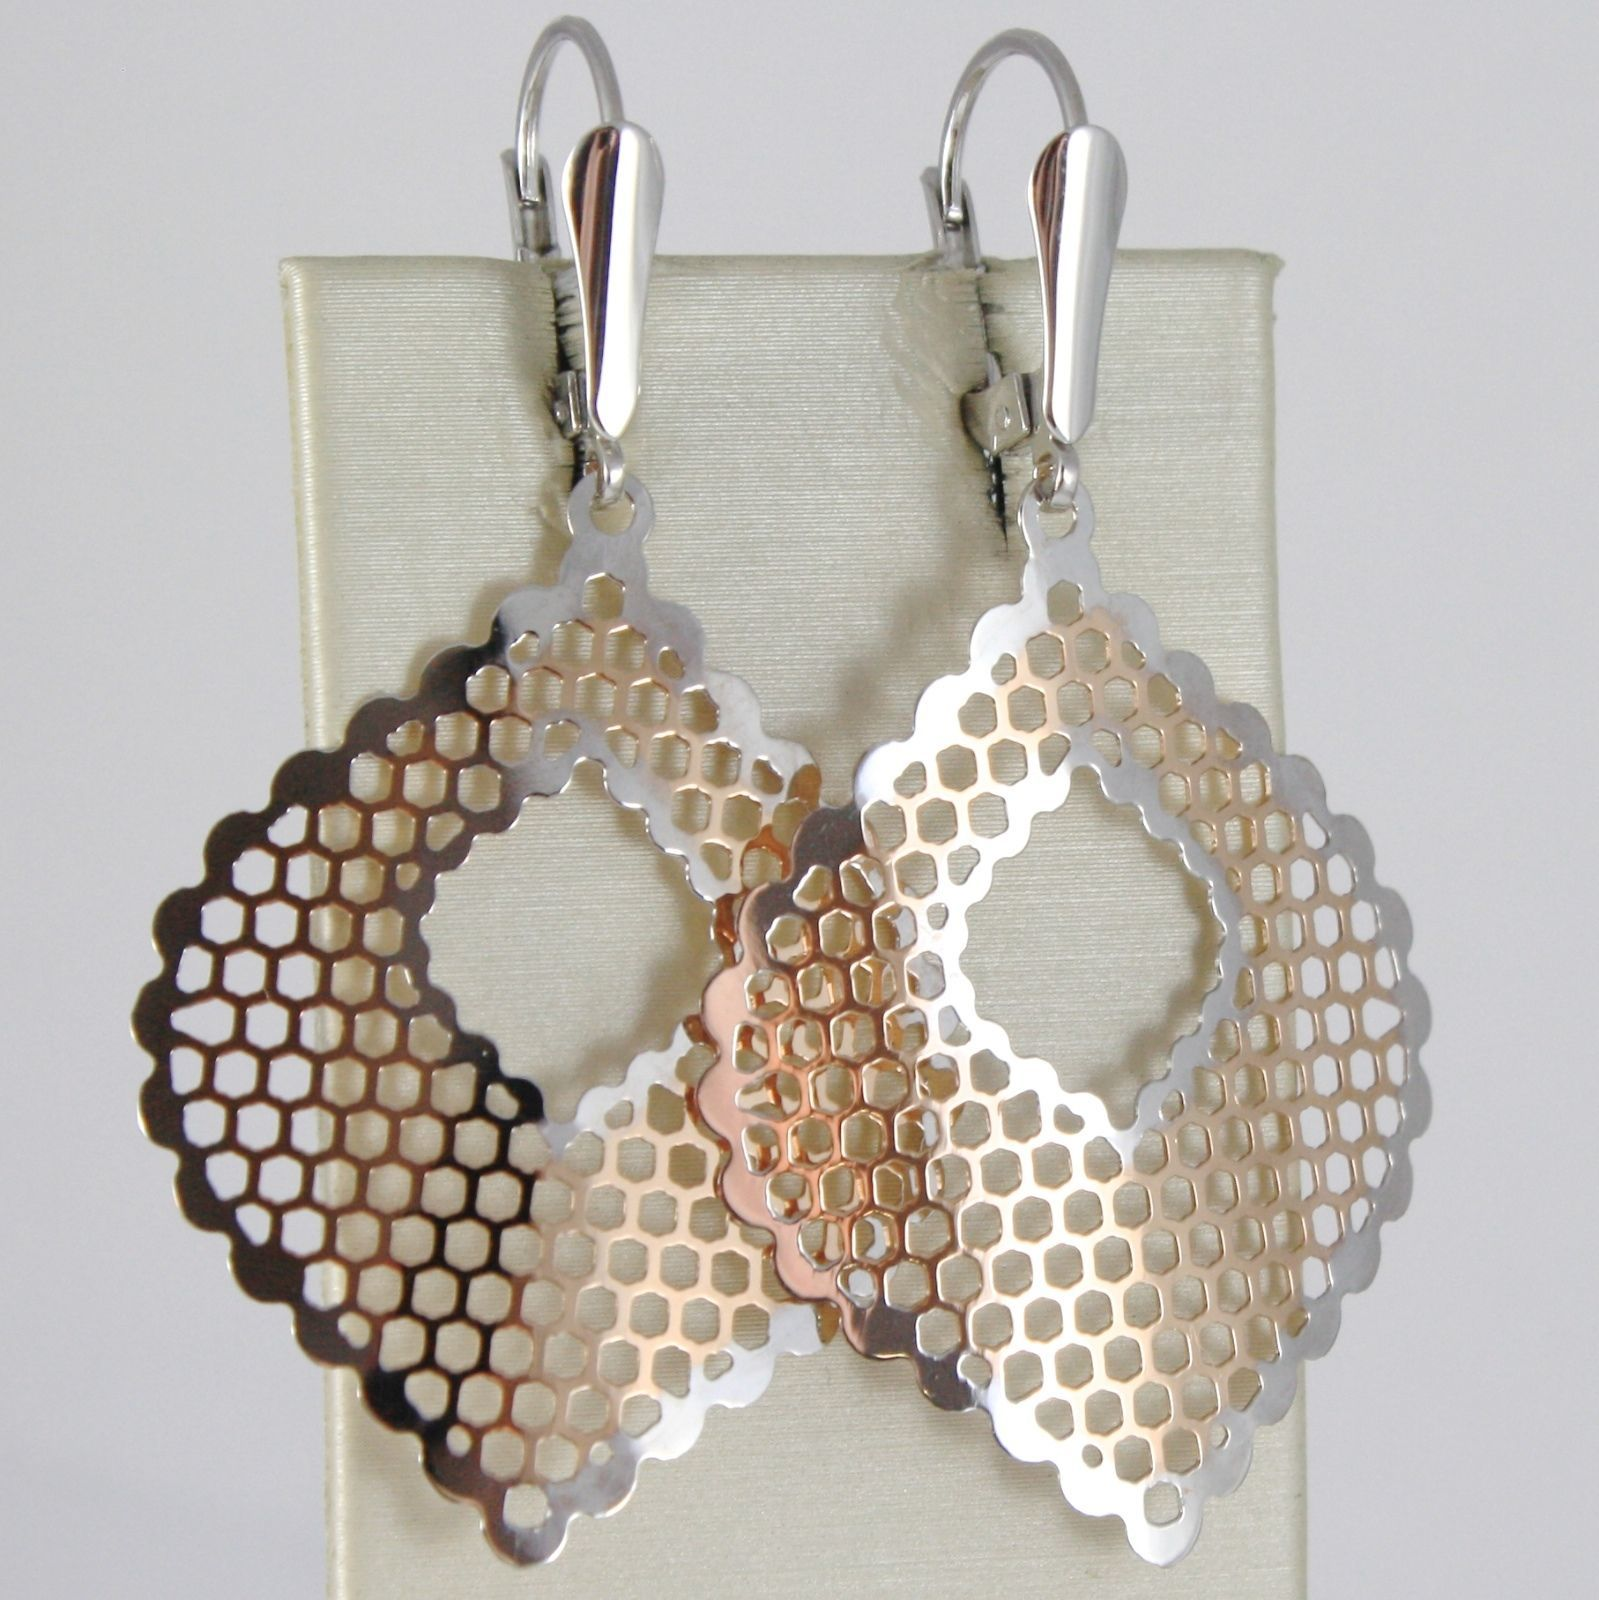 GOLD EARRINGS PINK WHITE 750 18K HANGING, LEAVES YOU WORK, COMB D'BEE, 5.3 CM